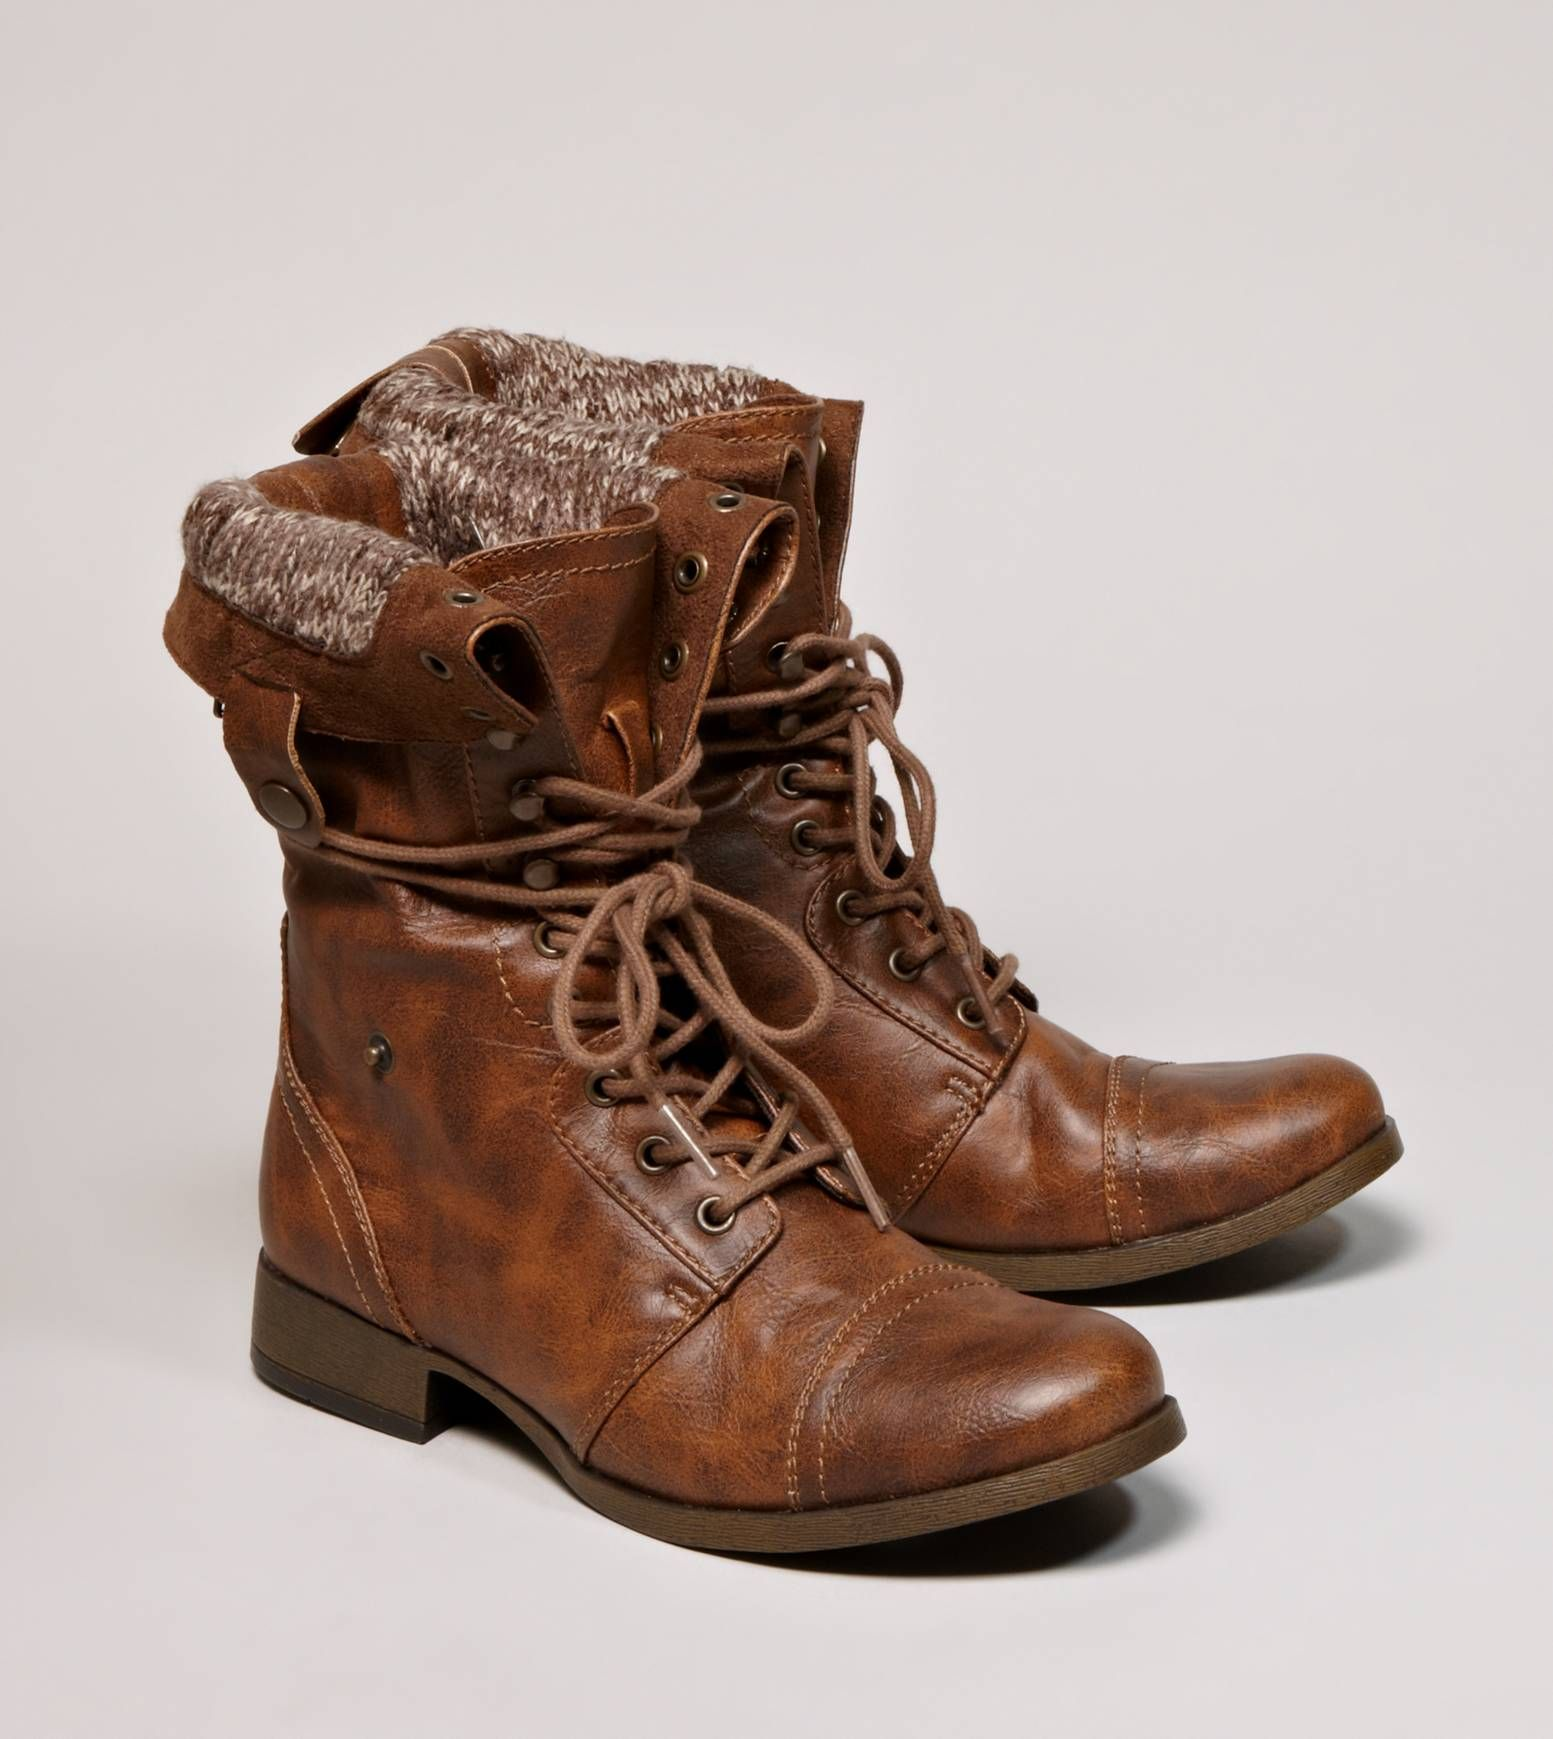 AE lace up boots, so cute have a red zipper in the back. LOVE THEM ...